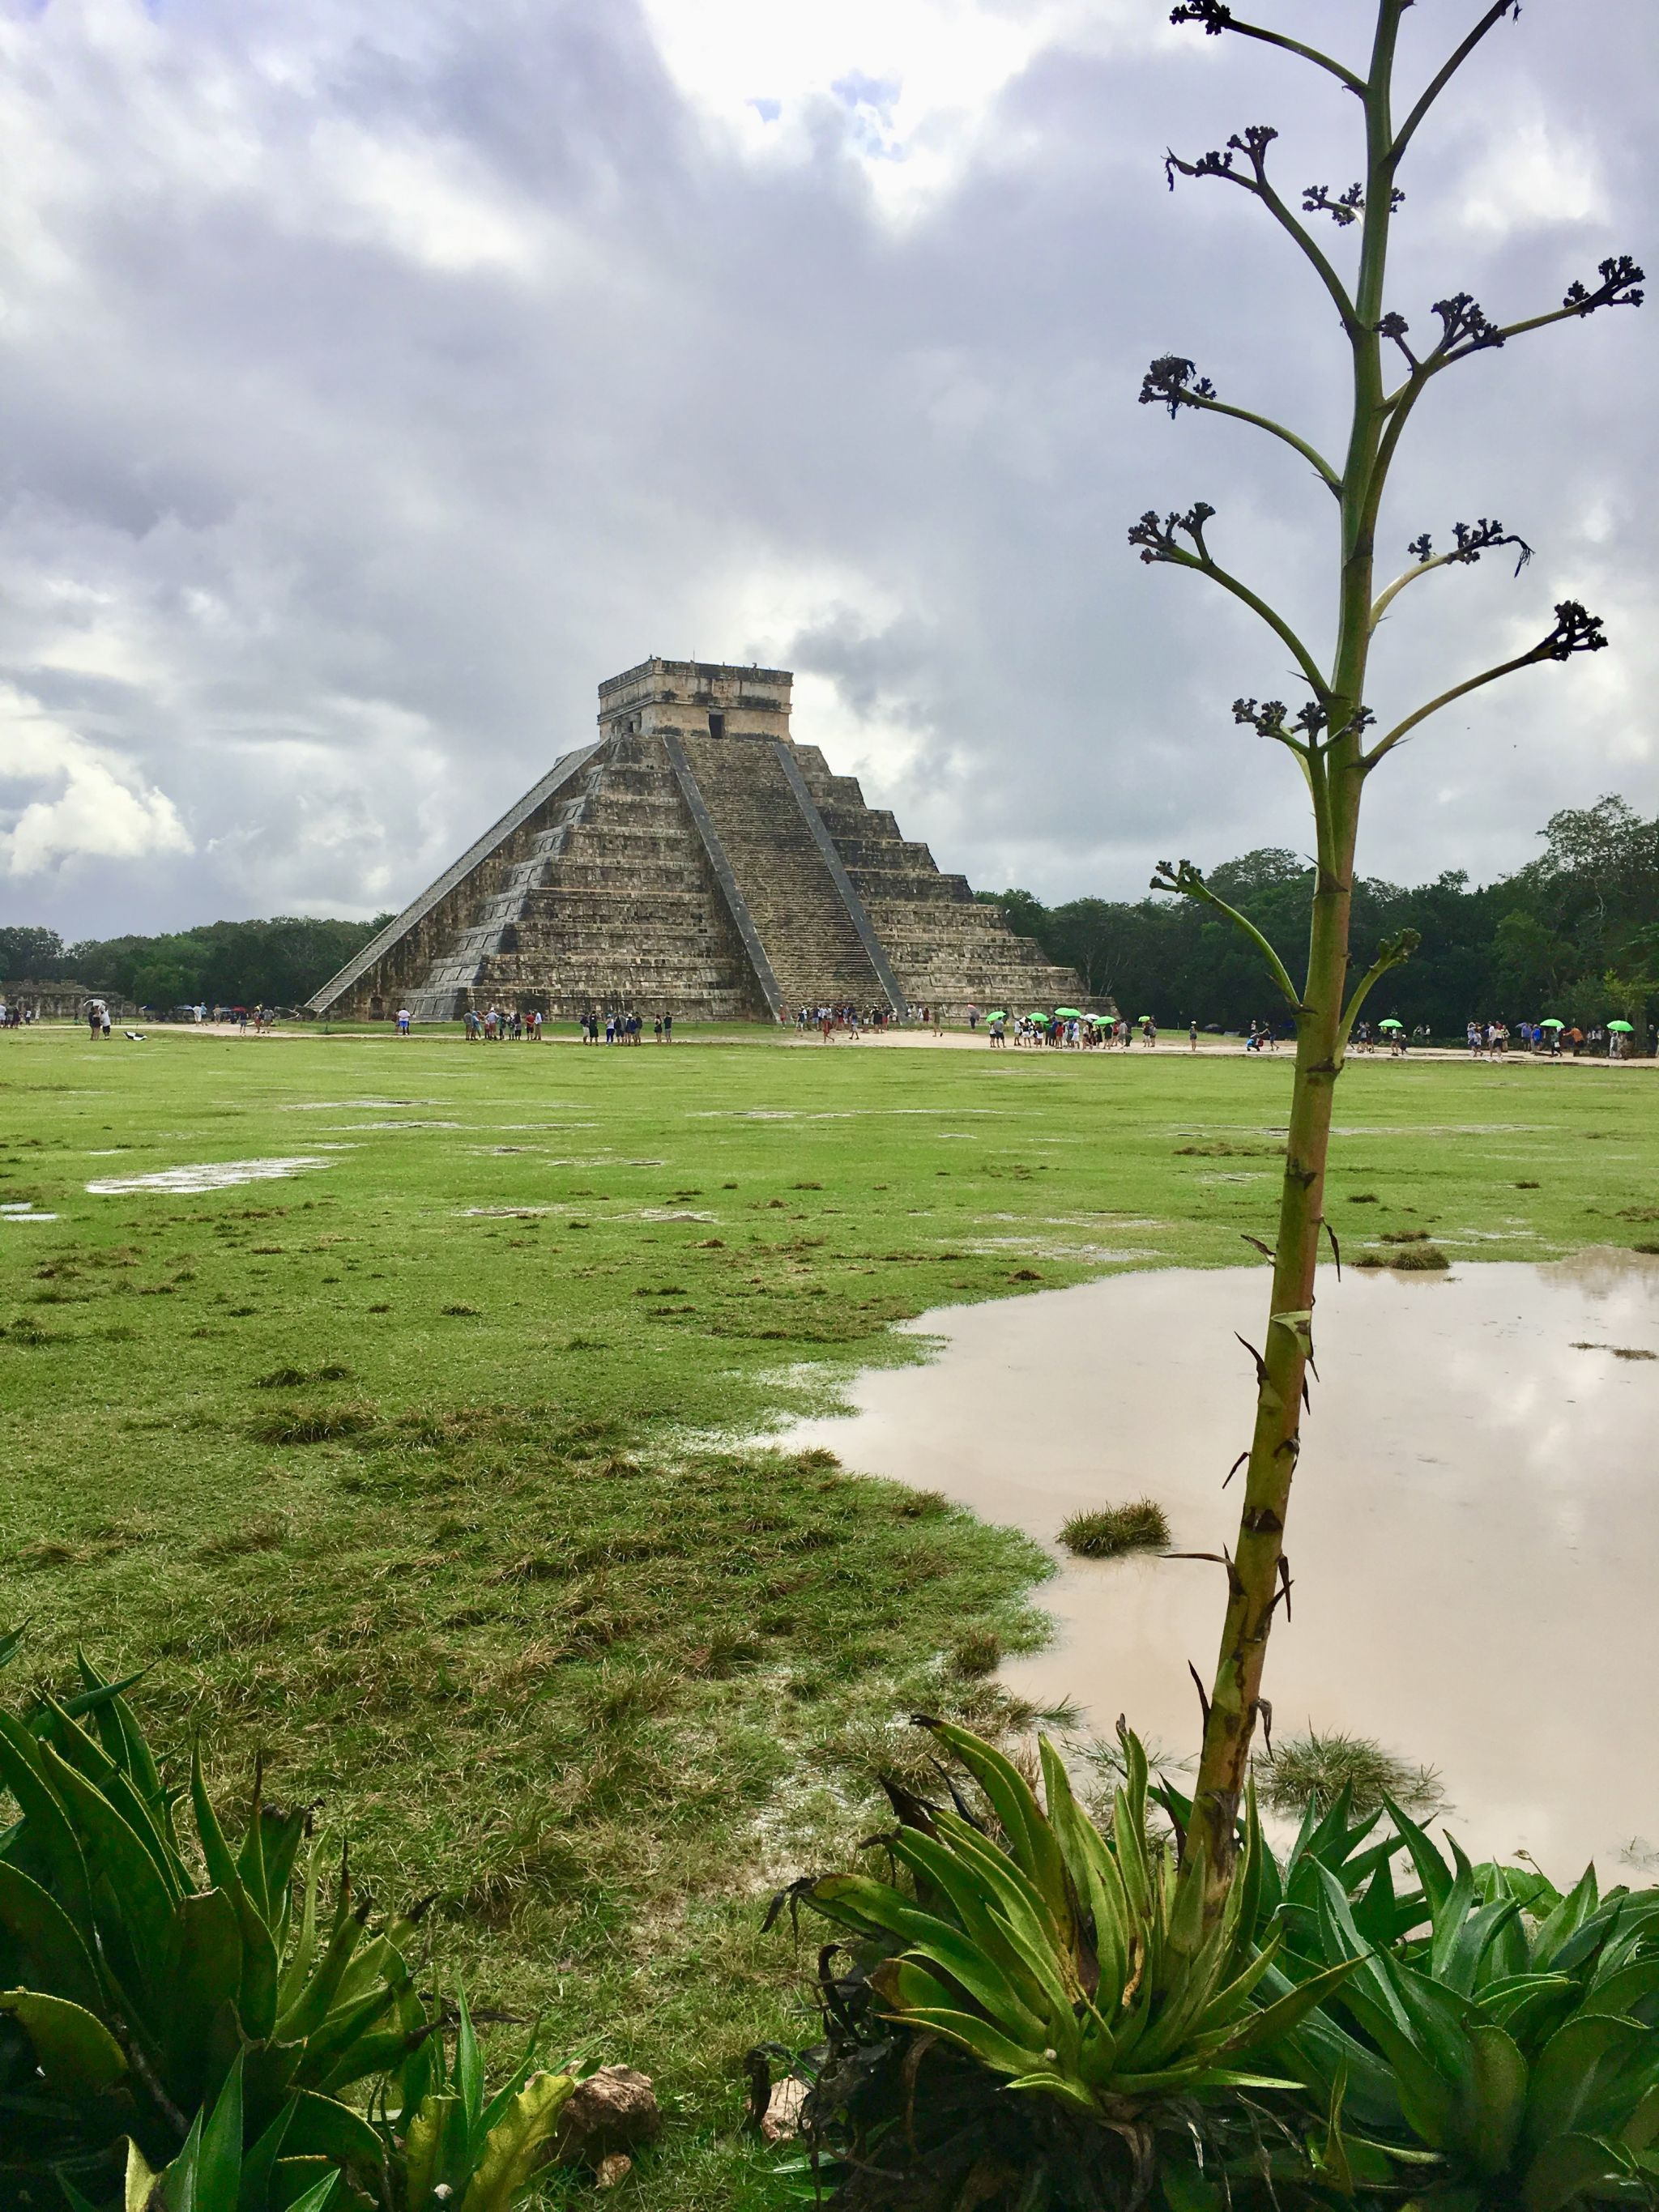 Kukulkan's pyramid in Chichen Itzá